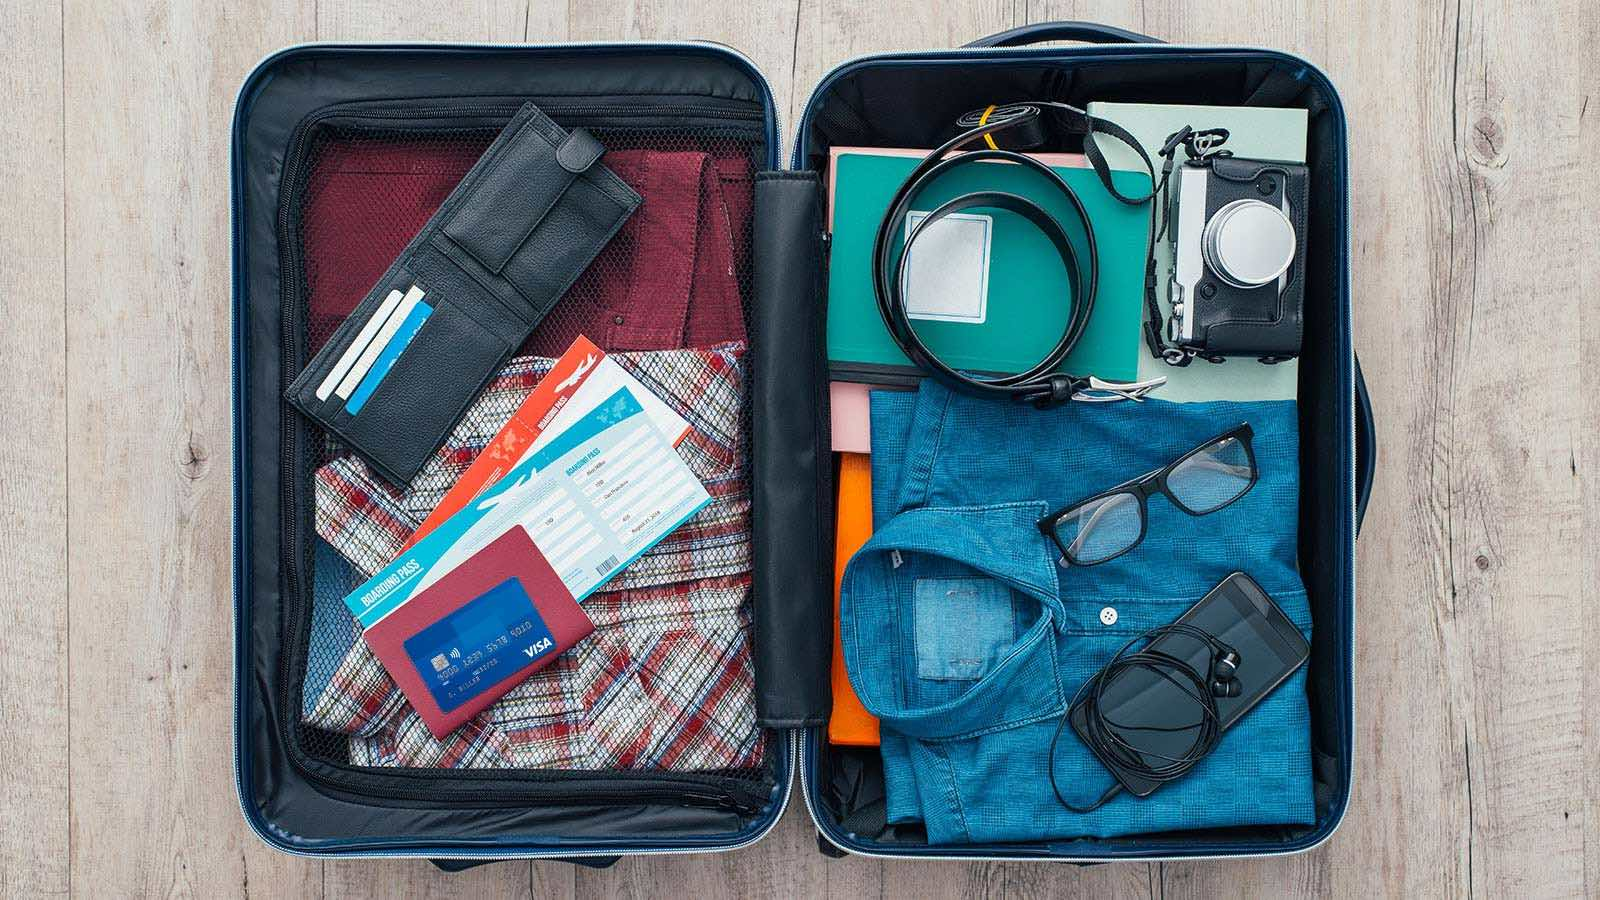 Open suitcase packed for travel with clothing, personal electronics, camera, wallet, airline tickets, passport and Visa card.